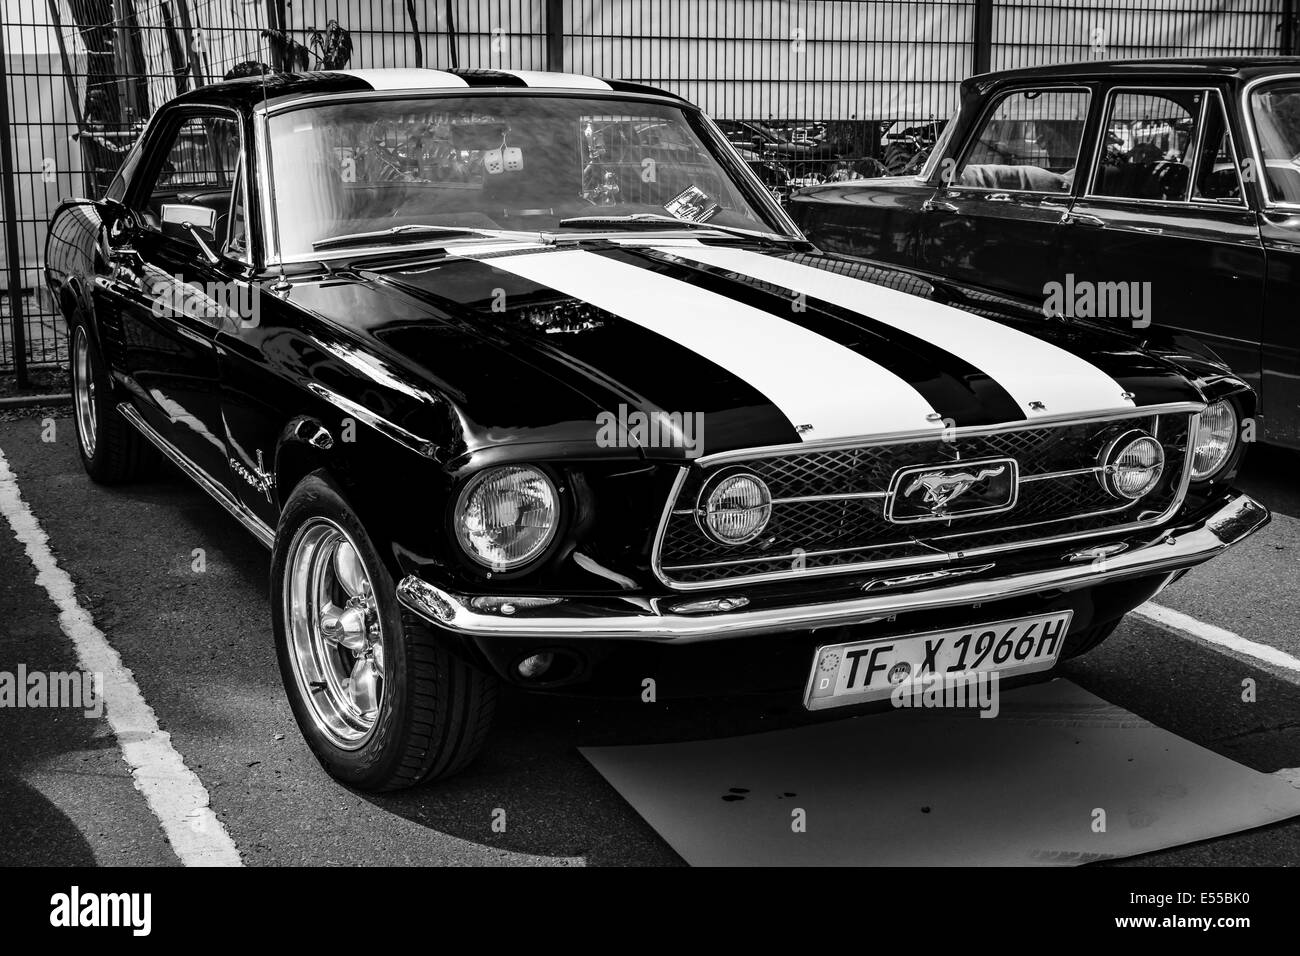 pony car ford mustang gt first generation black and white 27th stock photo royalty free. Black Bedroom Furniture Sets. Home Design Ideas